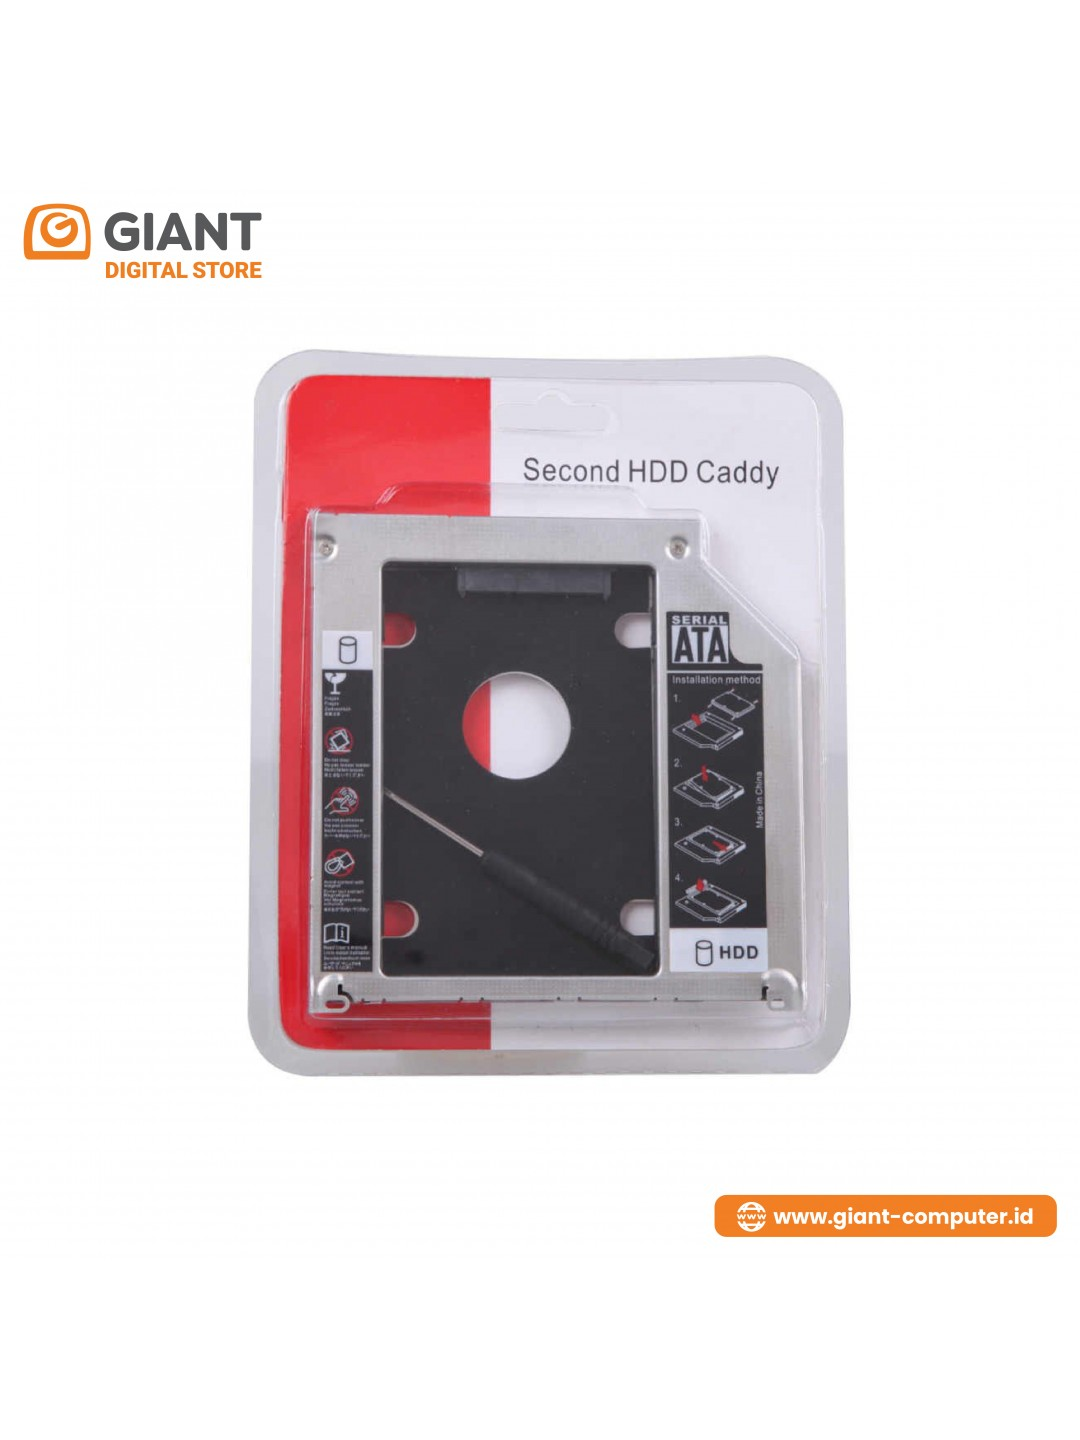 CASING HDD CADDY 12.7MM